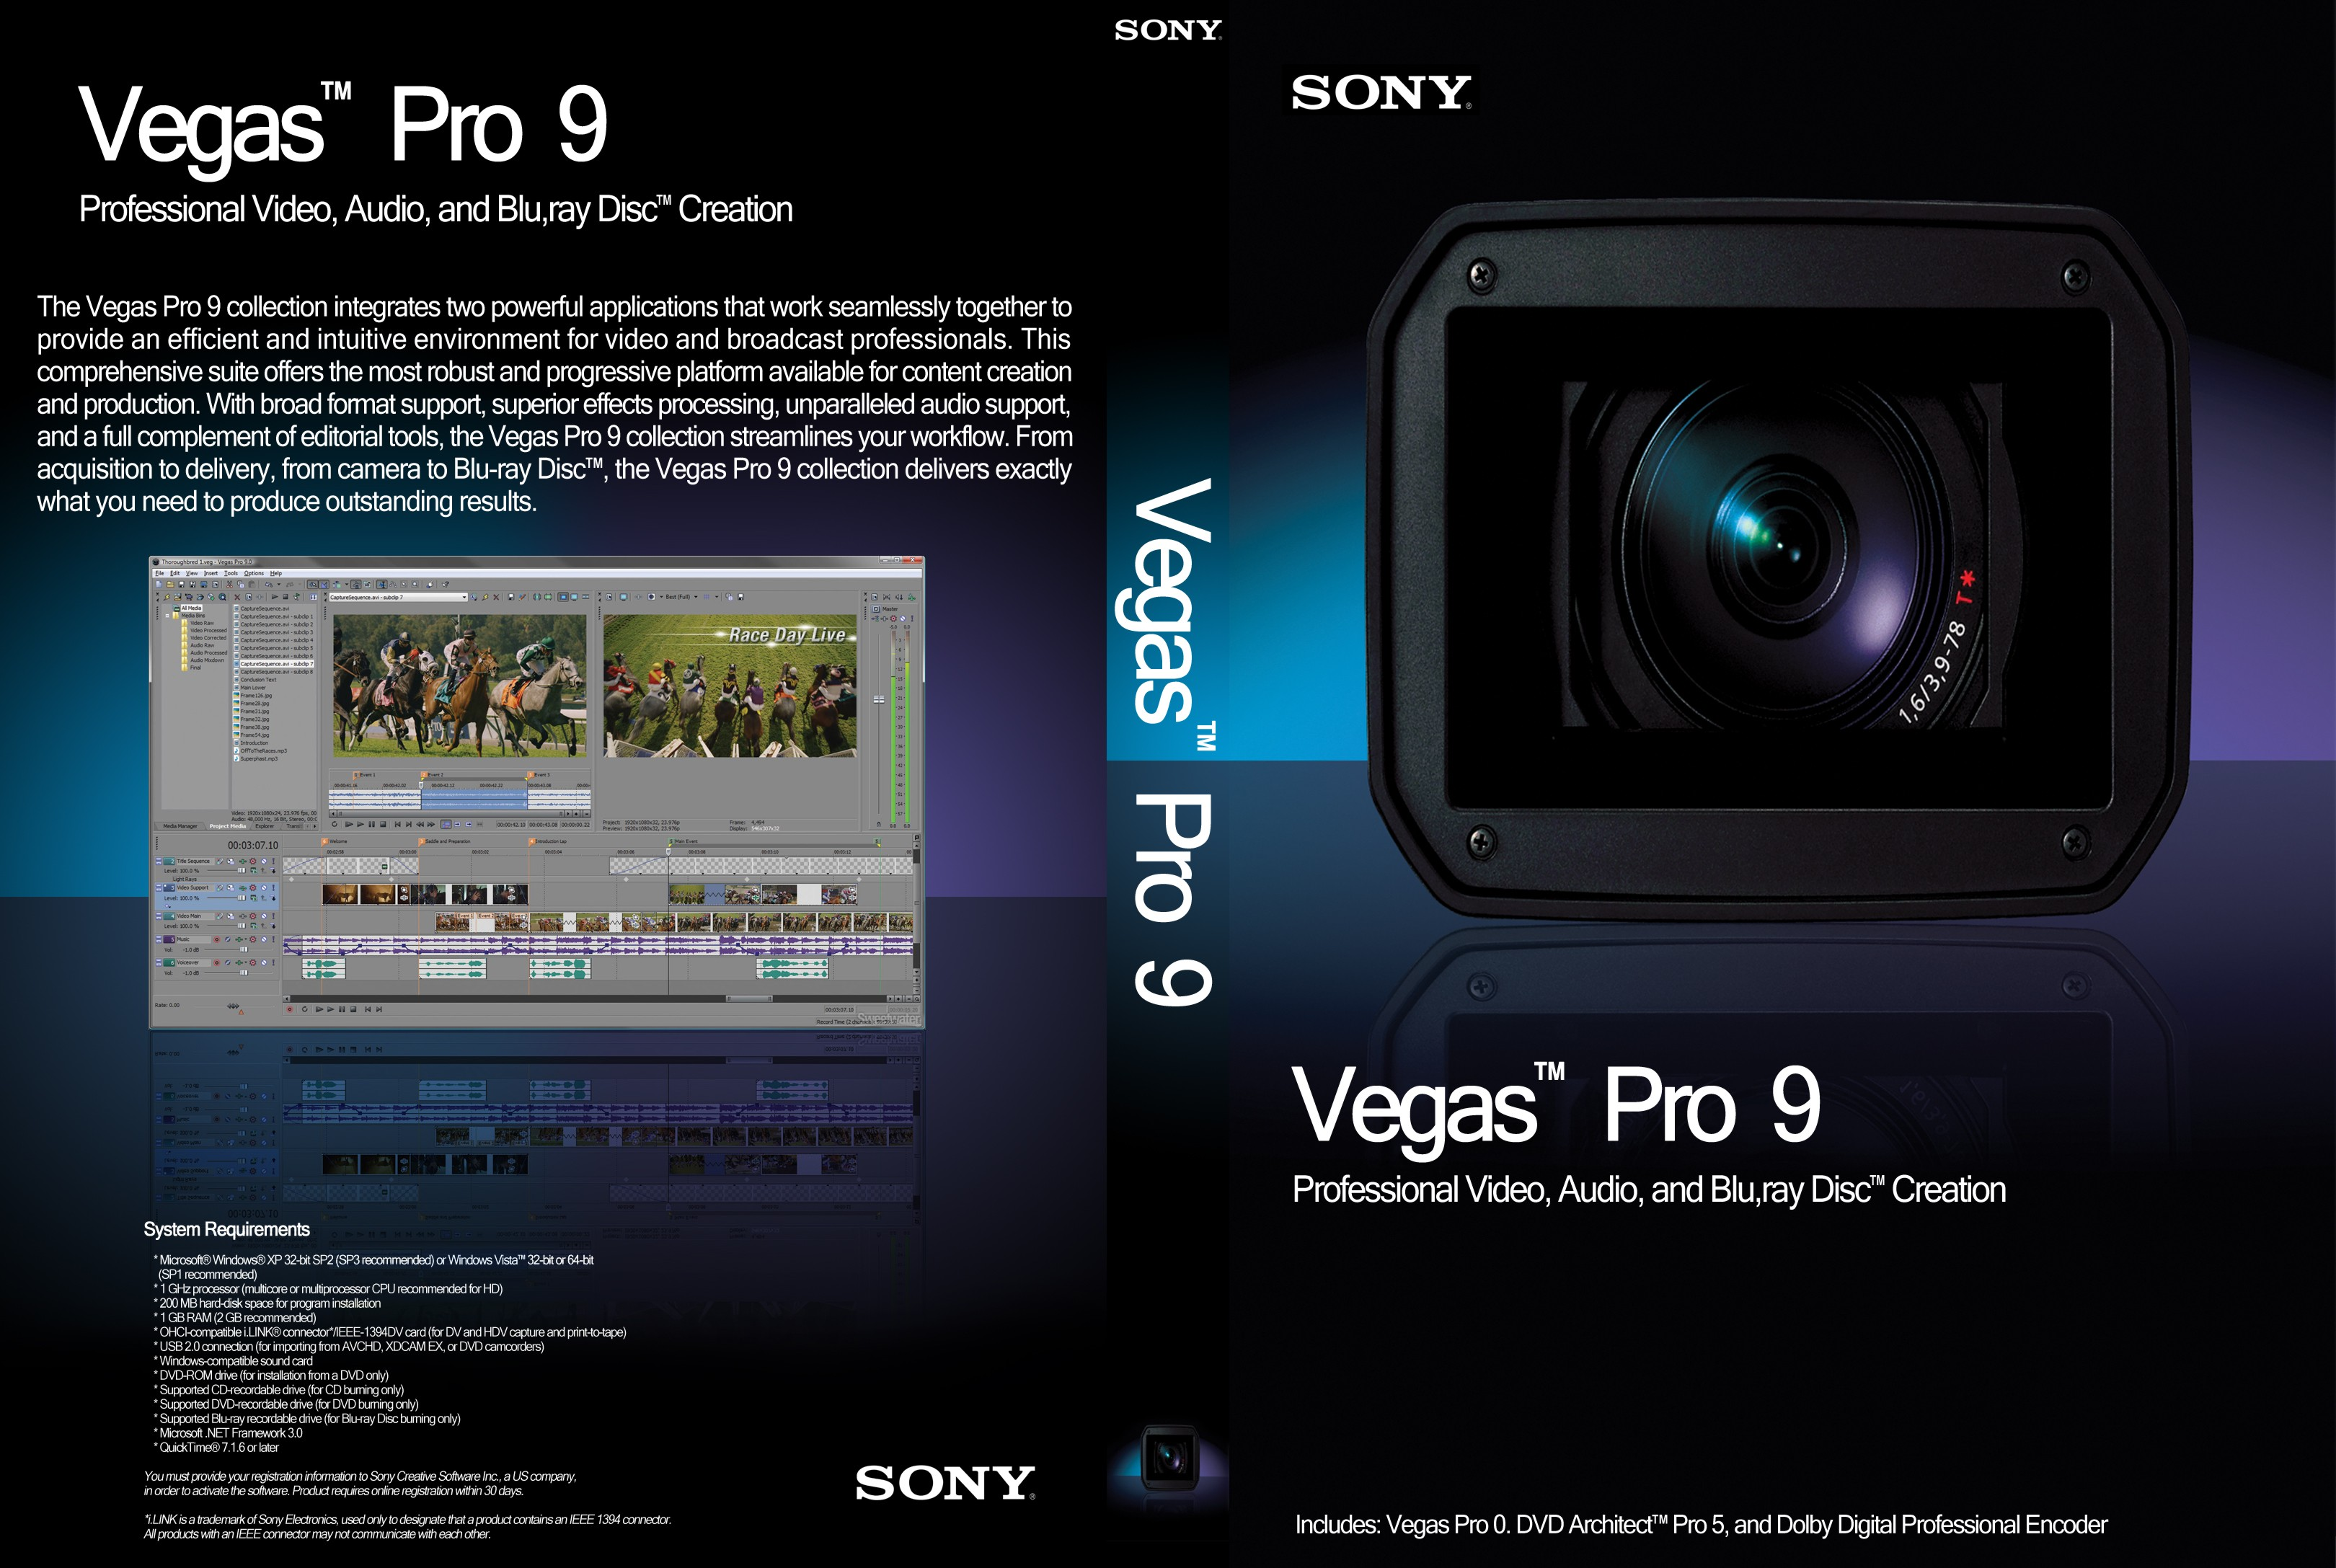 18 Oct The Vegas Pro 9 Collection Integrates Two Powerful